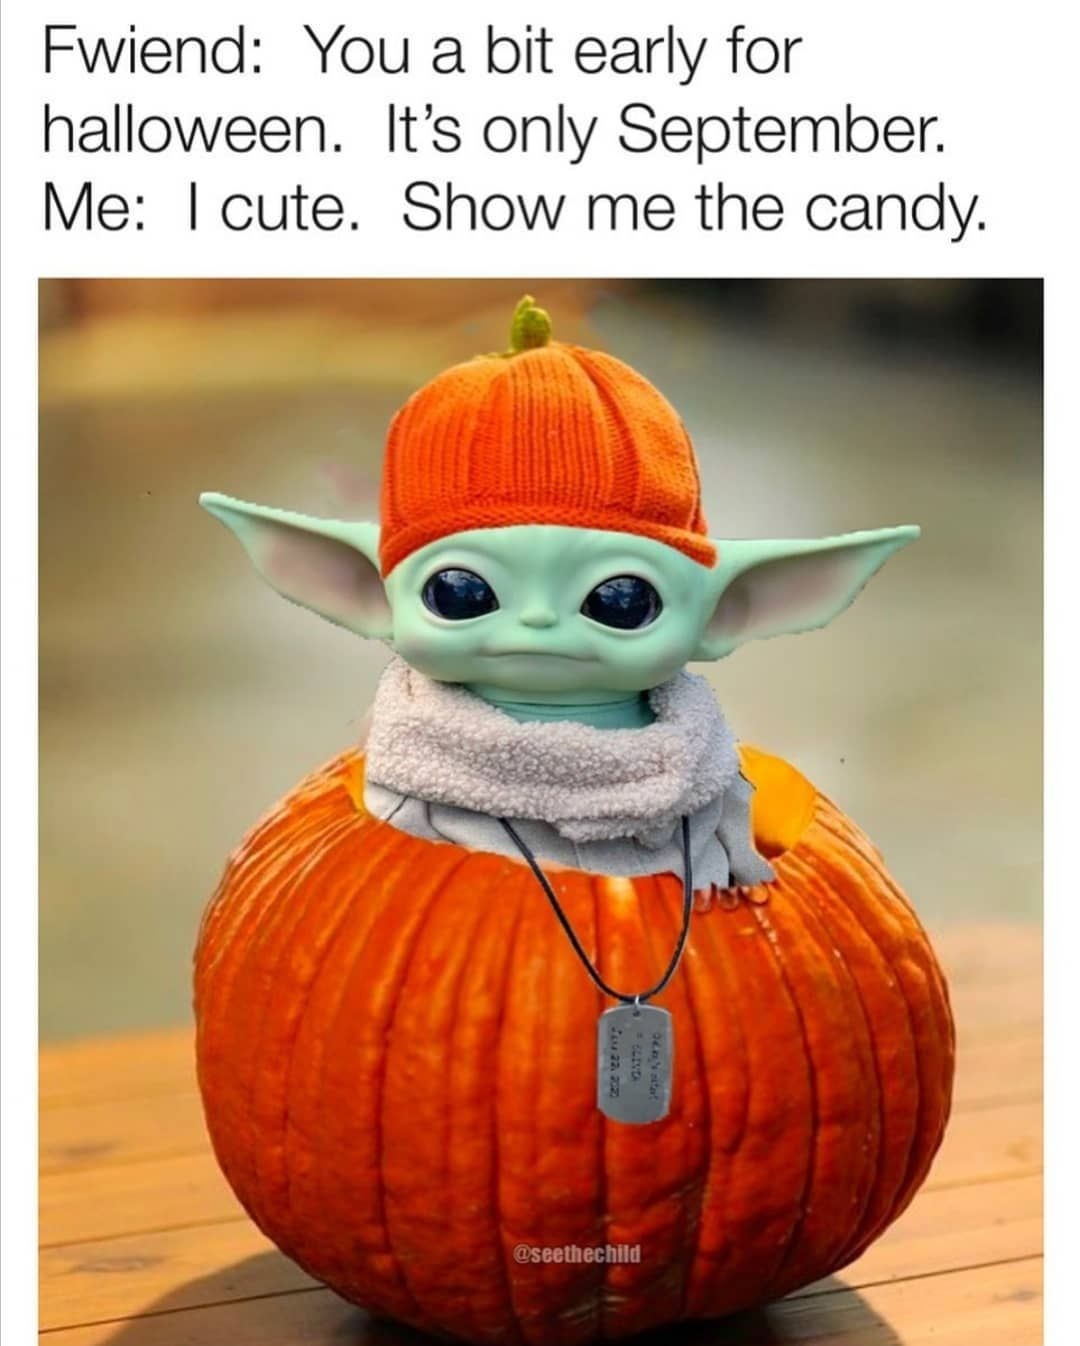 Star Wars Baby Yoda Memes On Instagram Would You Give Him Candies Follow Baby Yoda Ig Credit Babyyoda 2020 Star Wars Baby Yoda Wallpaper Yoda Funny